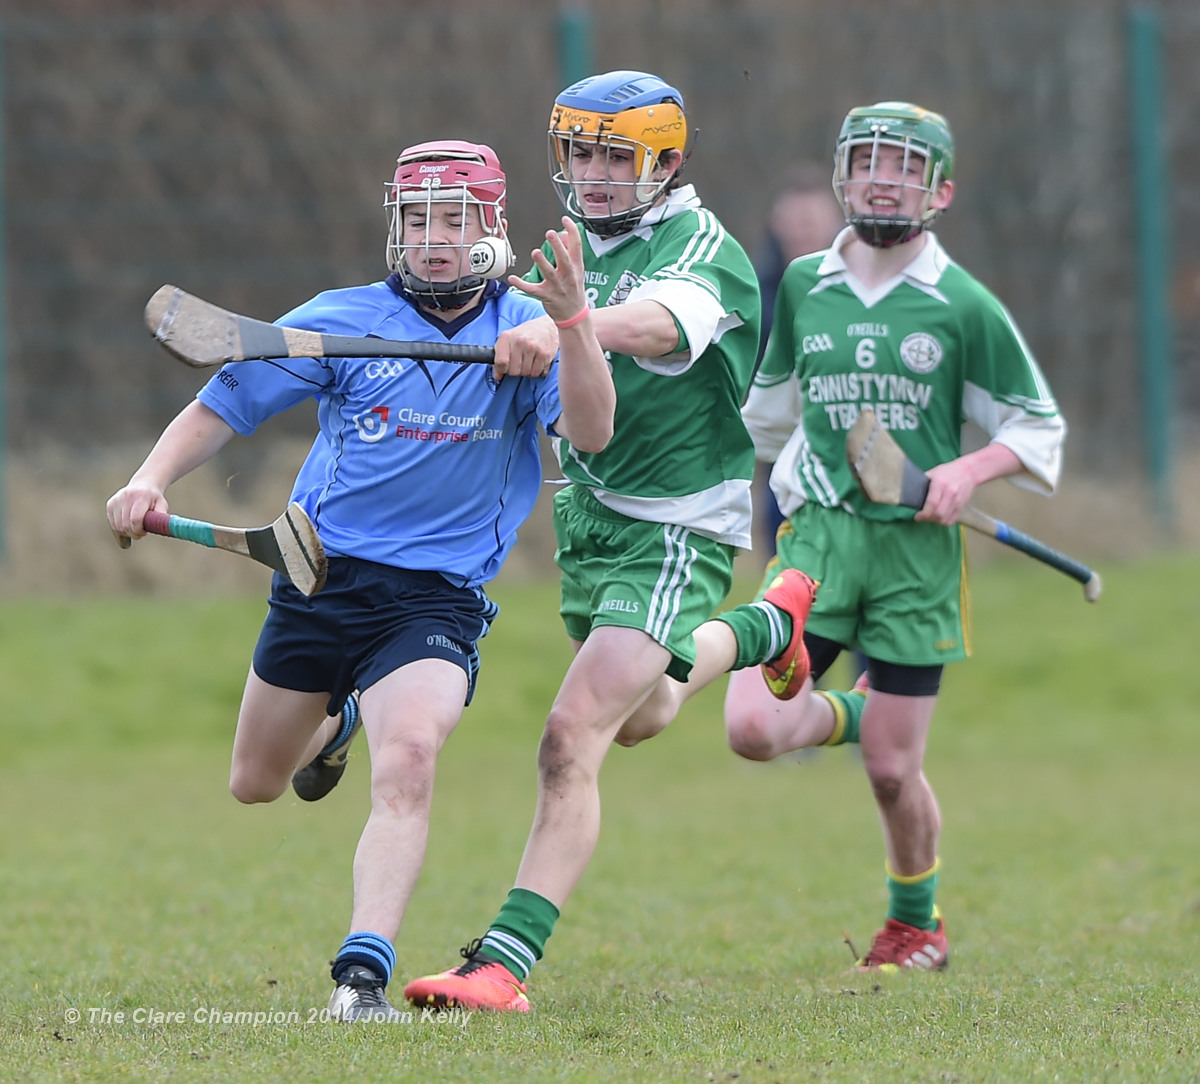 Conor Downes of Scariff Community College  in action against Aidan Mc Carthy of Ennistymon CBS during their Munster U-15 D final at Clarecastle. Photograph by John Kelly.